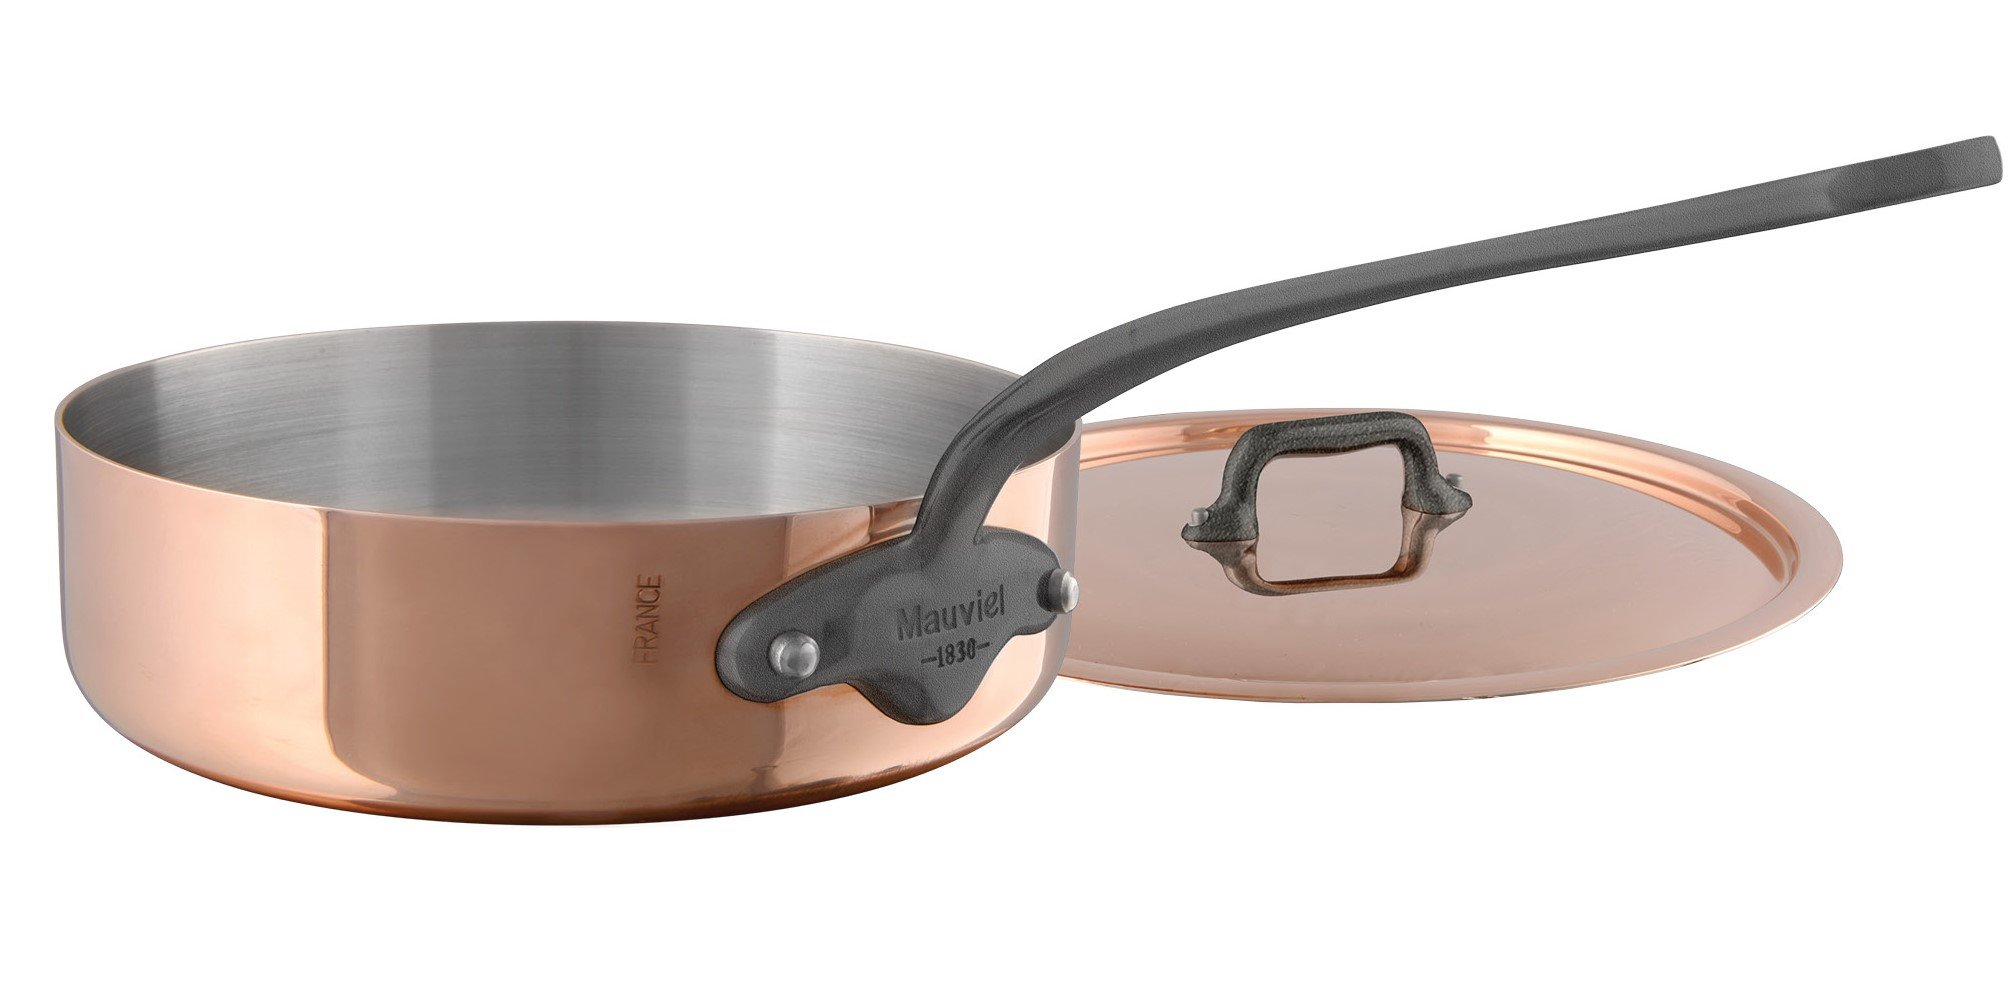 Mauviel M'Heritage M150C 6451.29 Copper Saute Pan with Lid. 28cm/11'' 5.2L/5.5 quart with Cast Stainless Steel Iron Eletroplated  Handle